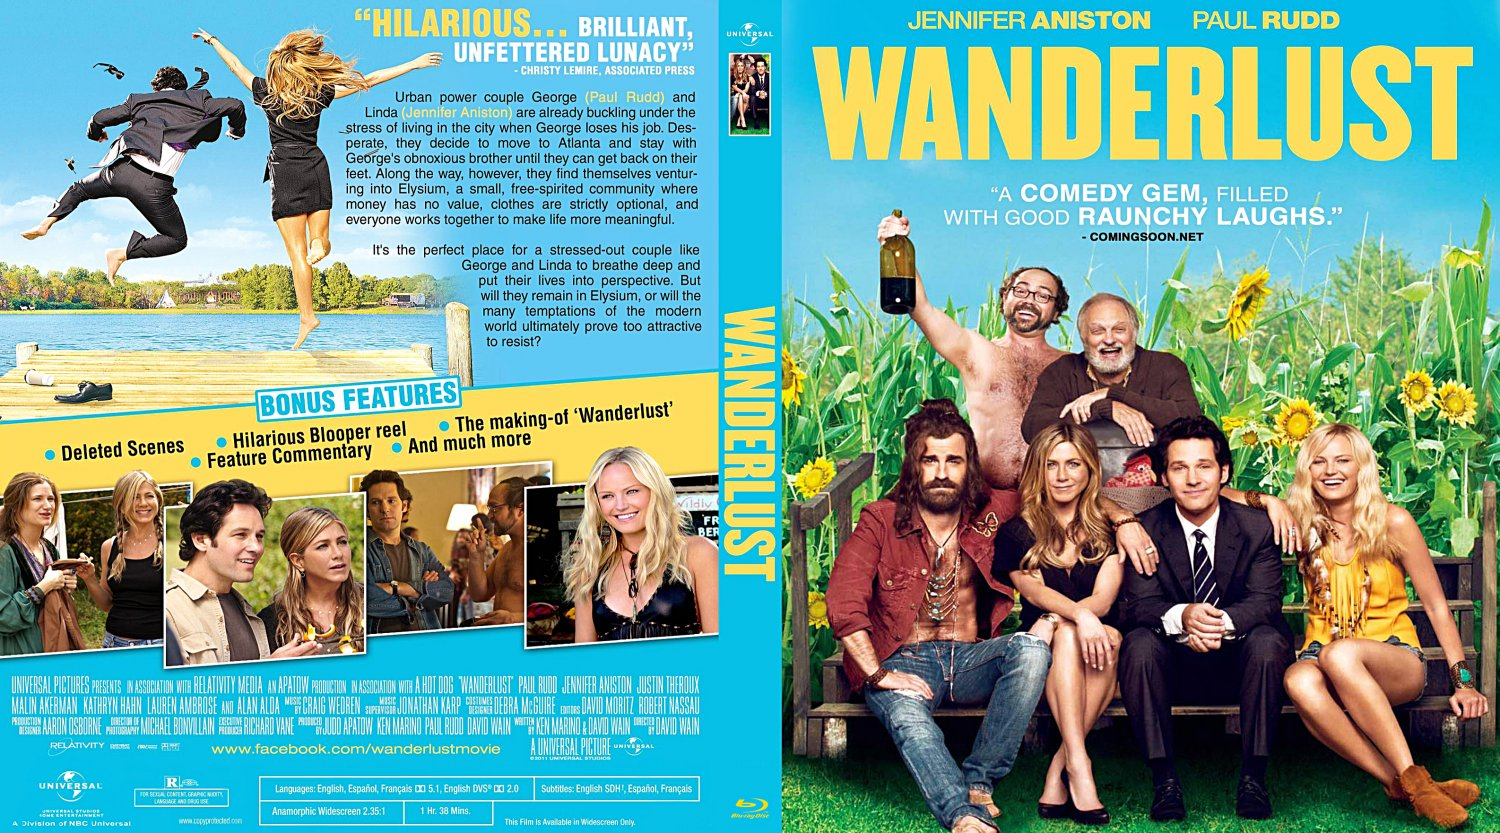 Wanderlust - Movie Blu-Ray Custom Covers - Wanderlust 2012 CustomBD ...: www.dvd-covers.org/art/Blu_Ray_Covers/Movie_Blu-Ray_Custom_Covers...